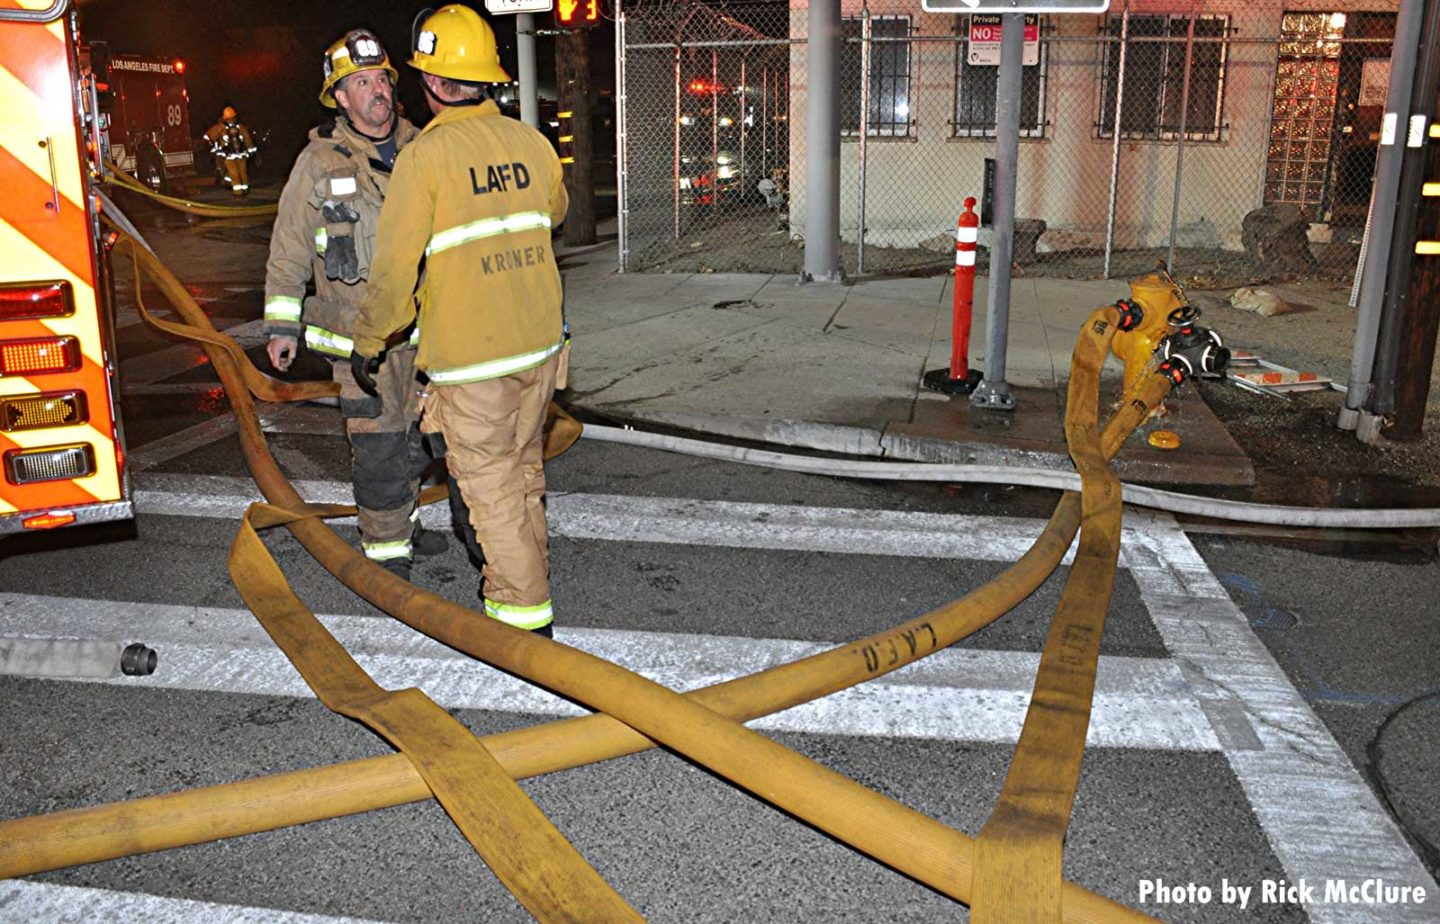 Multiple hoselines attached to a fire hydrant